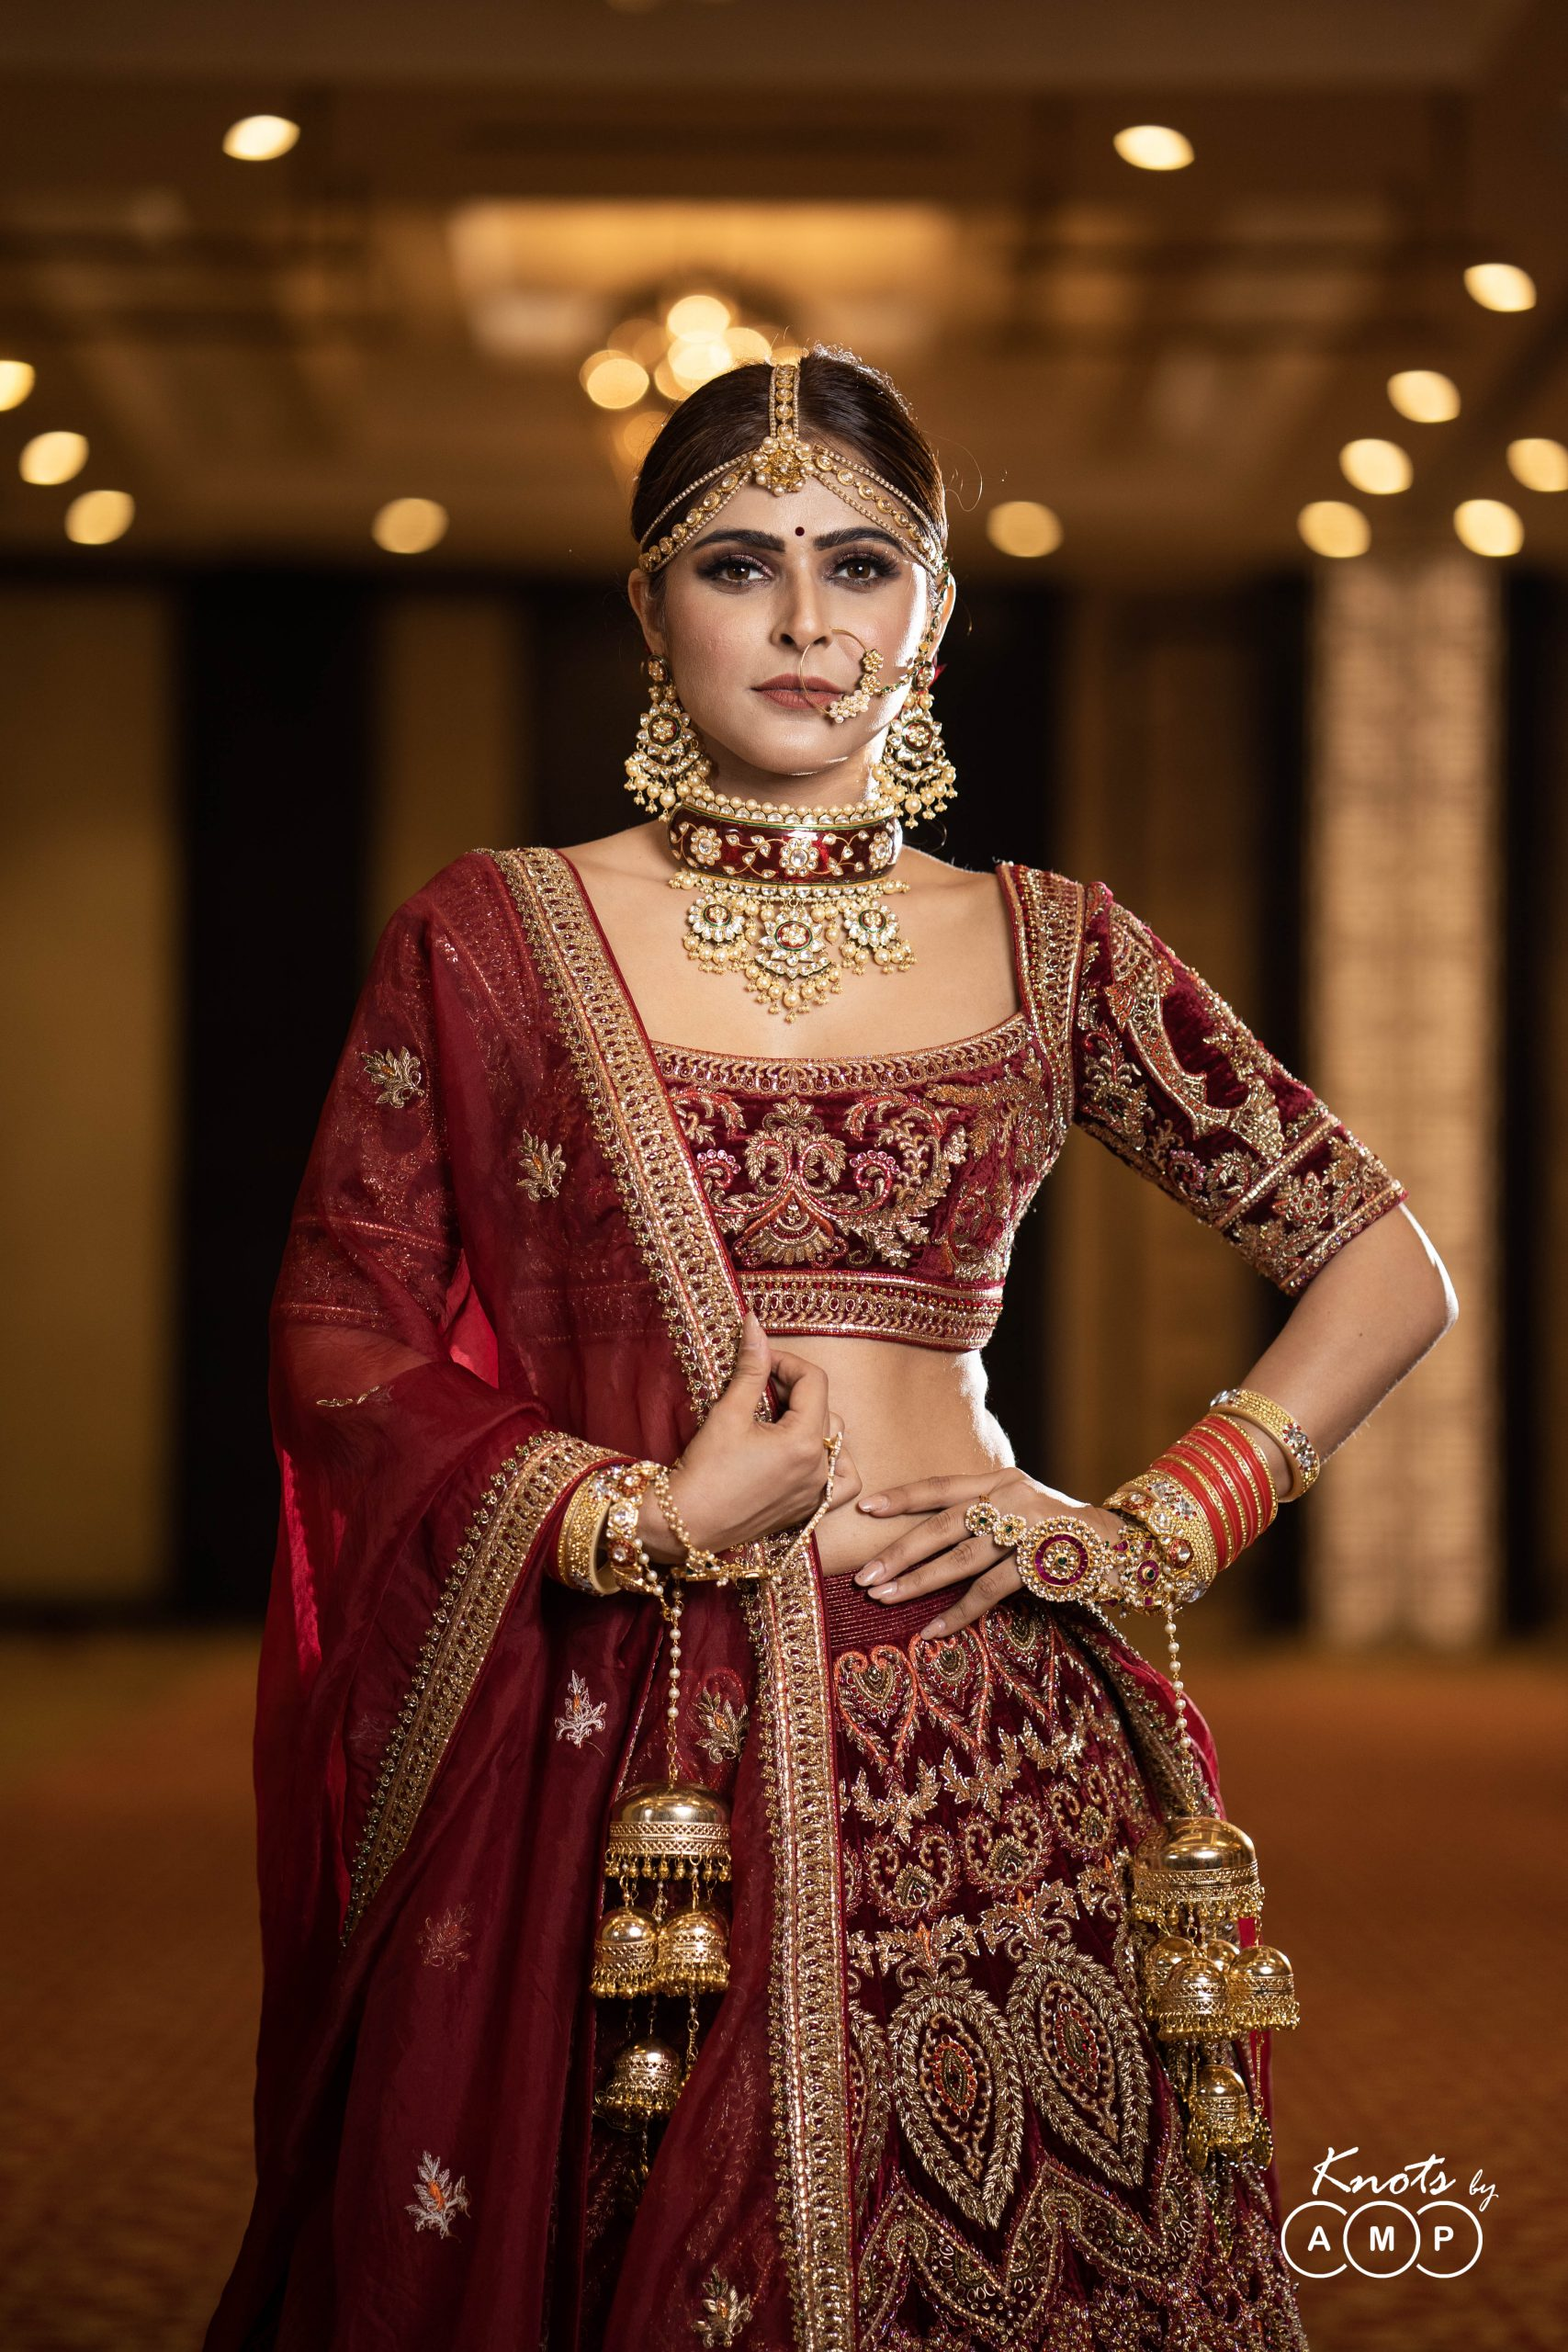 Actress Madhurima Tuli in Maathapatti by Shobha Shringar Jewellers -06